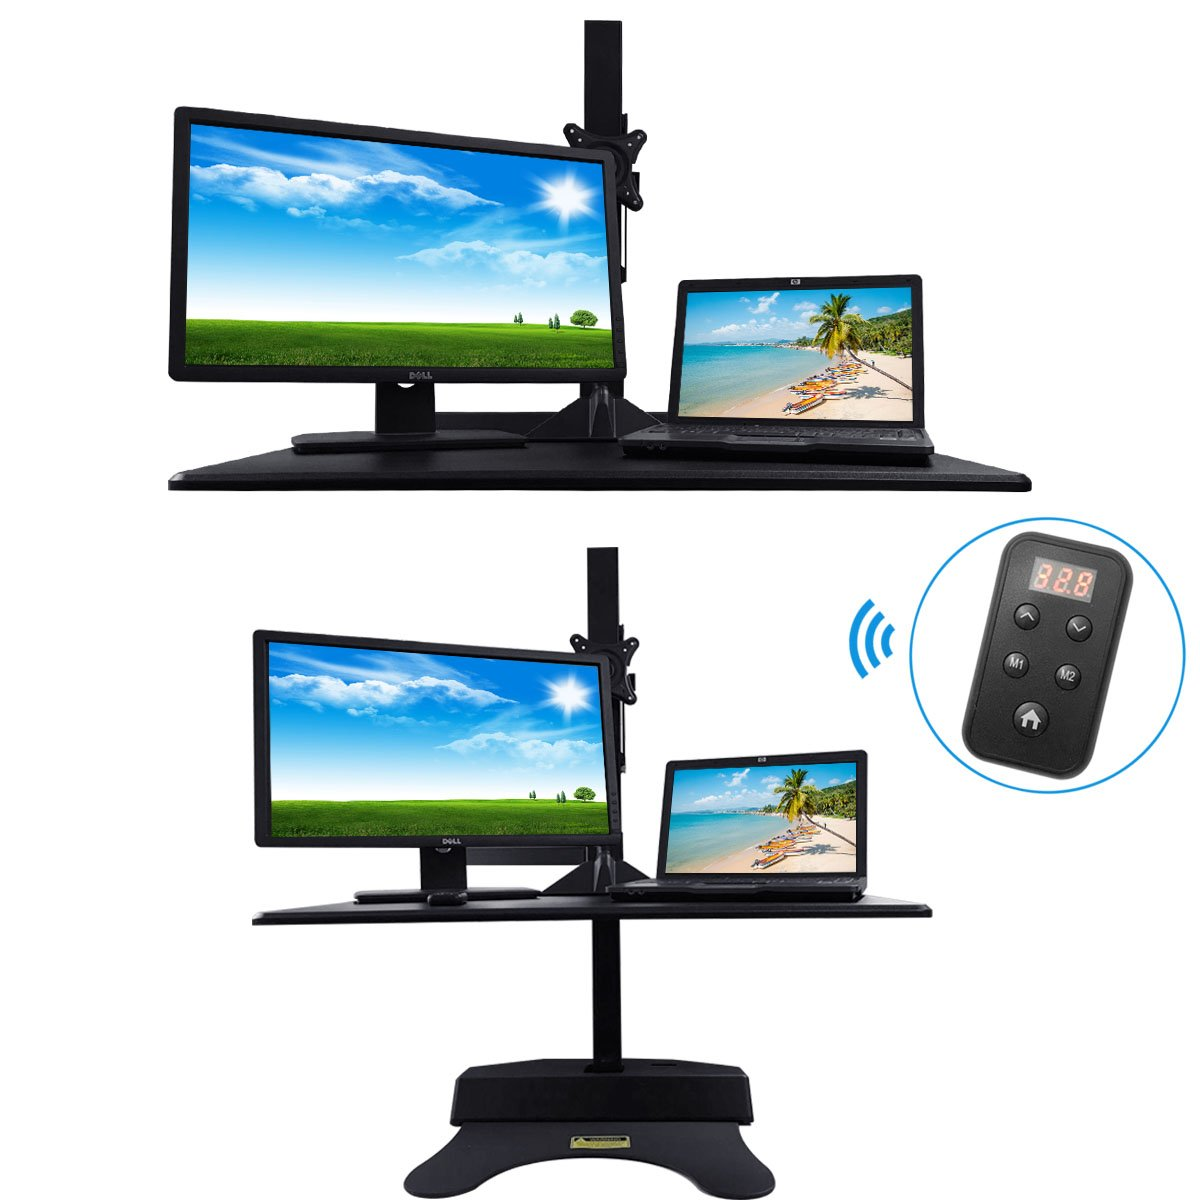 Standing Desk Riser, Freemaxdesk Electric Power Remote Control Height Adjustable Sit to Stand Desk Converter with Monitor Vesa Mount ,Worksuface(26''x21'') by freemaxdesk (Image #7)